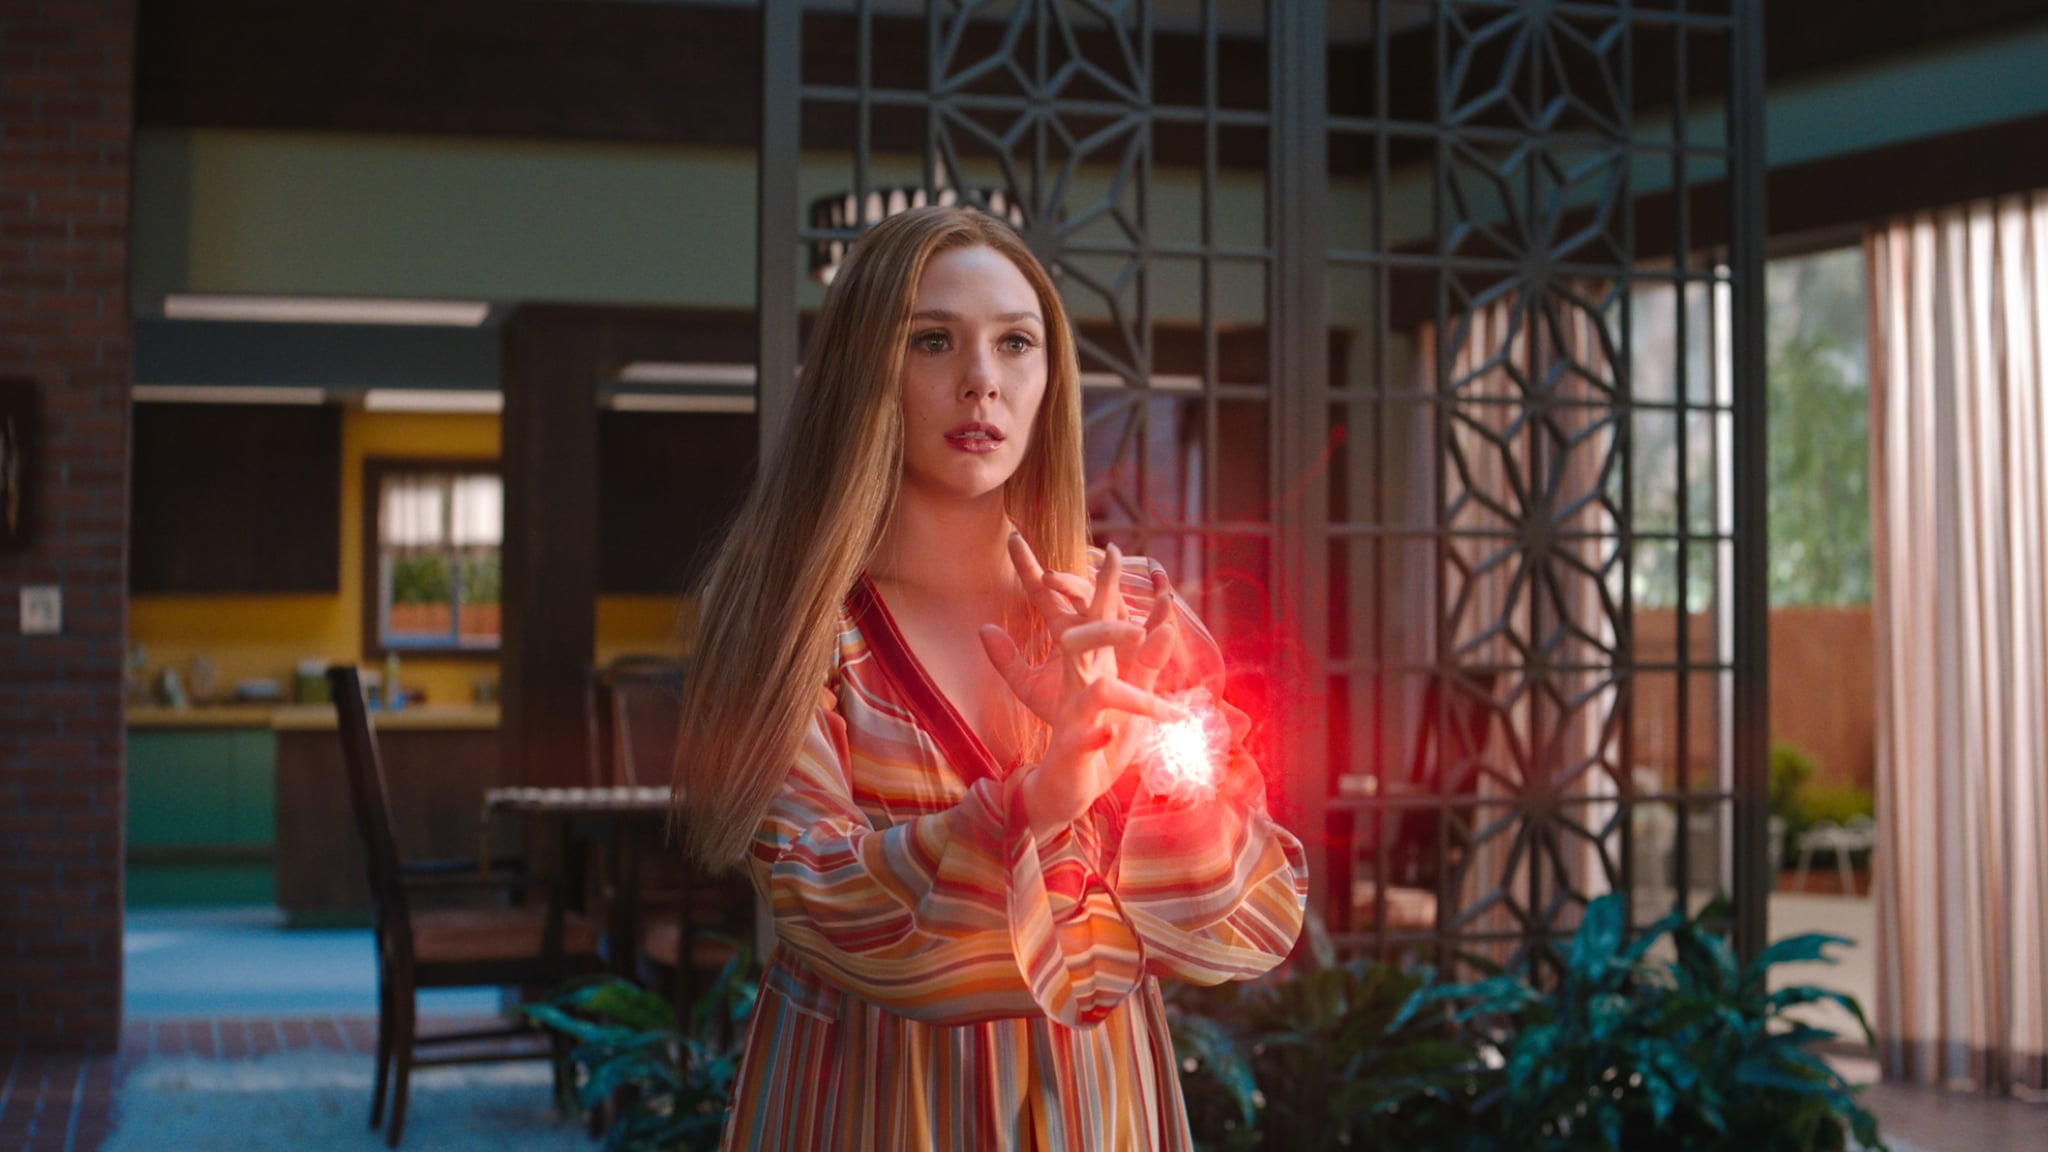 Elizabeth Olsen as Wanda Maximoff in Marvel Studios' WANDAVISION exclusively on Disney+. Photo courtesy of Marvel Studios. ©Marvel Studios 2021. All Rights Reserved.